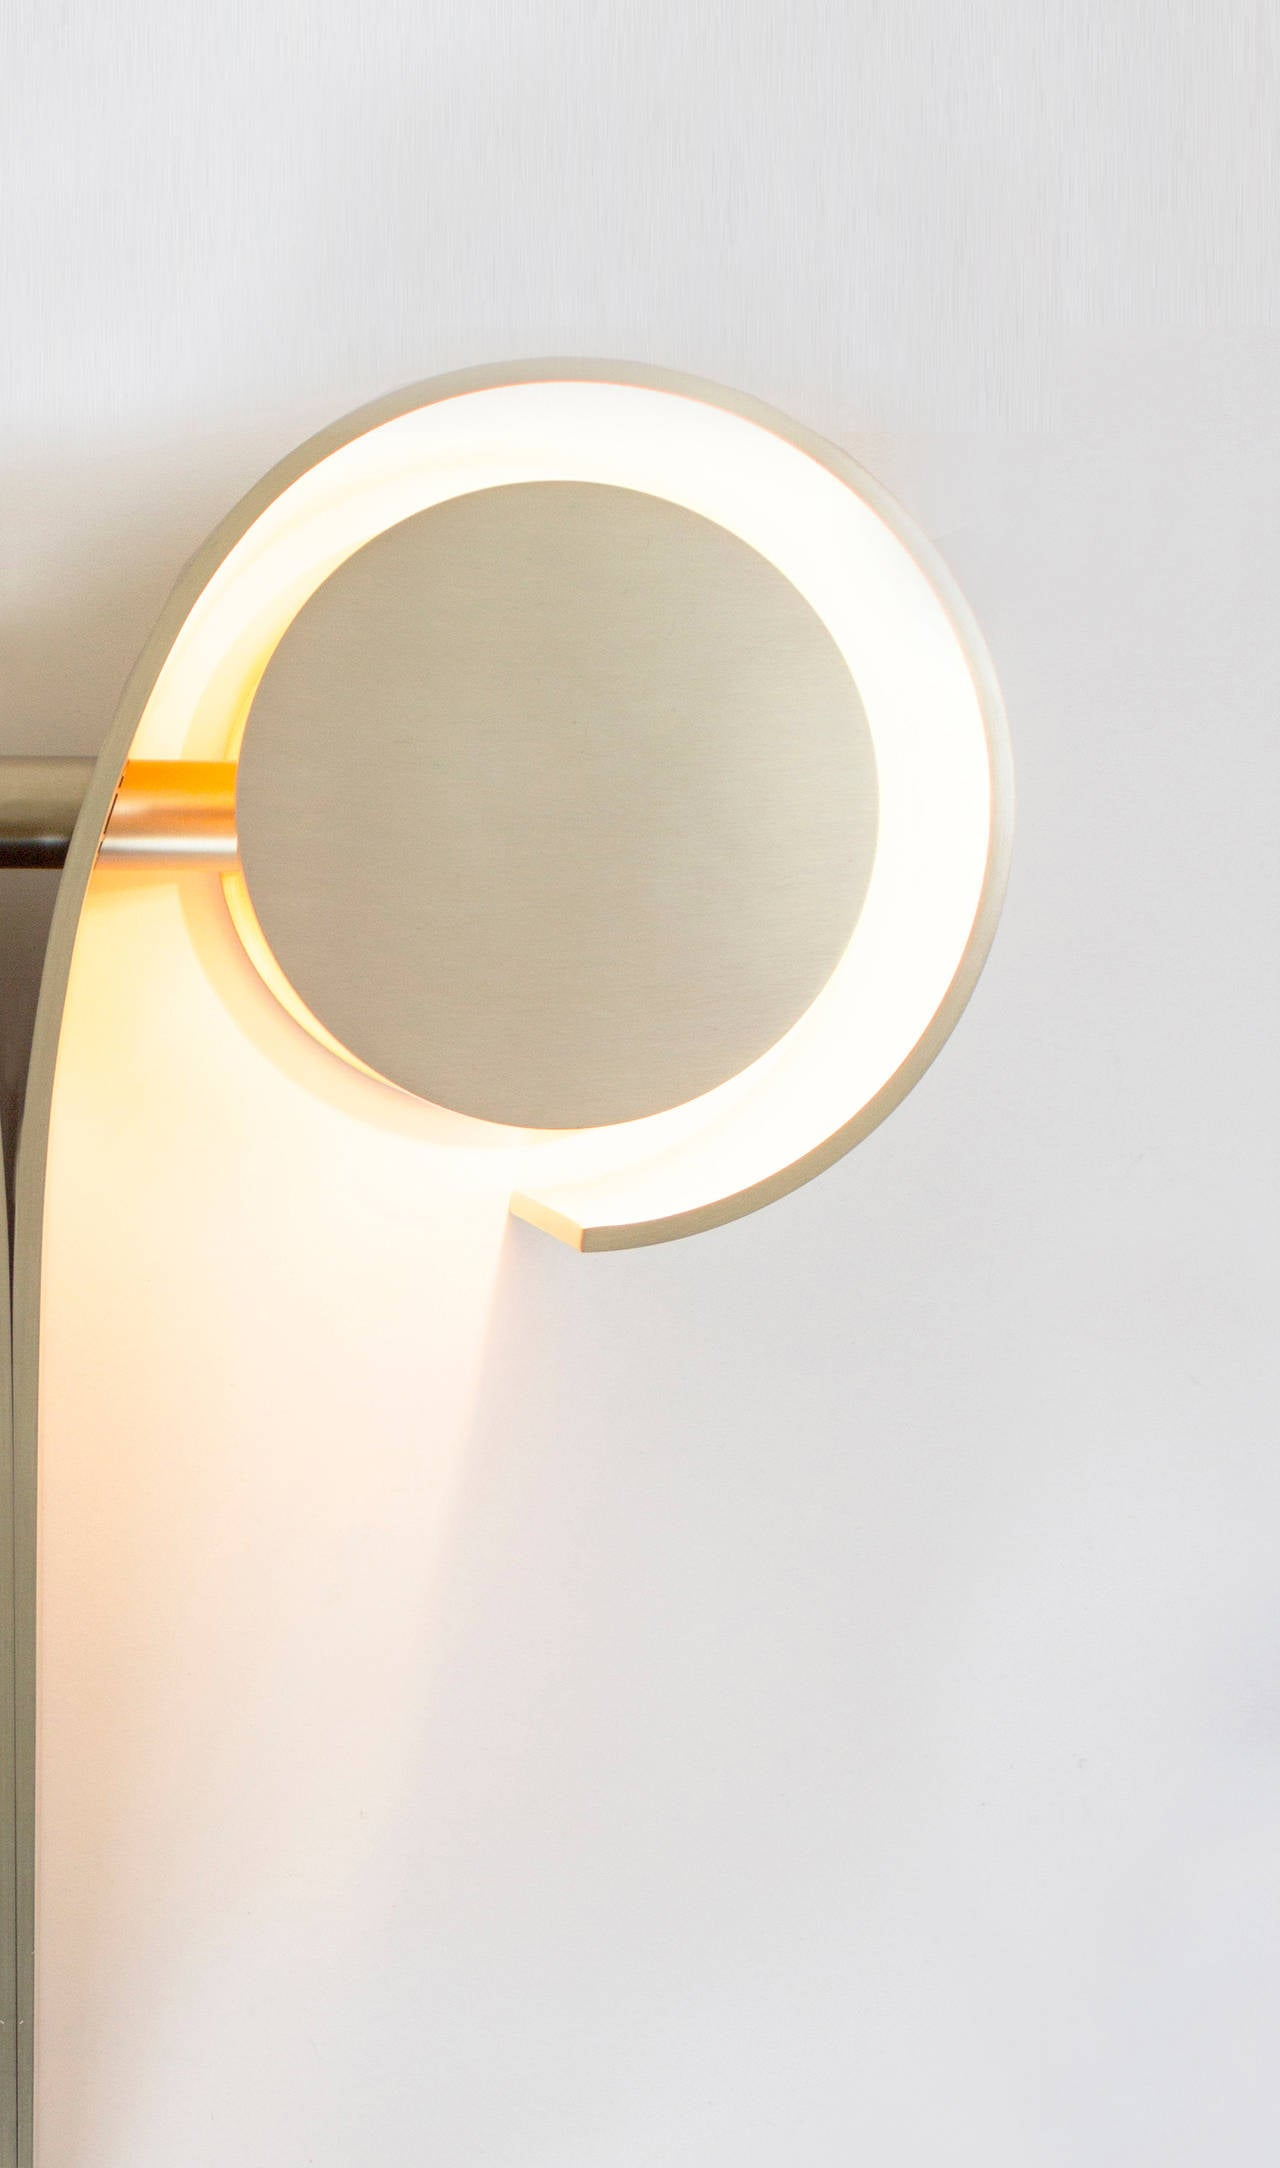 Plated Contemporary 'Khnum' Sconce by Material Lust, 2015